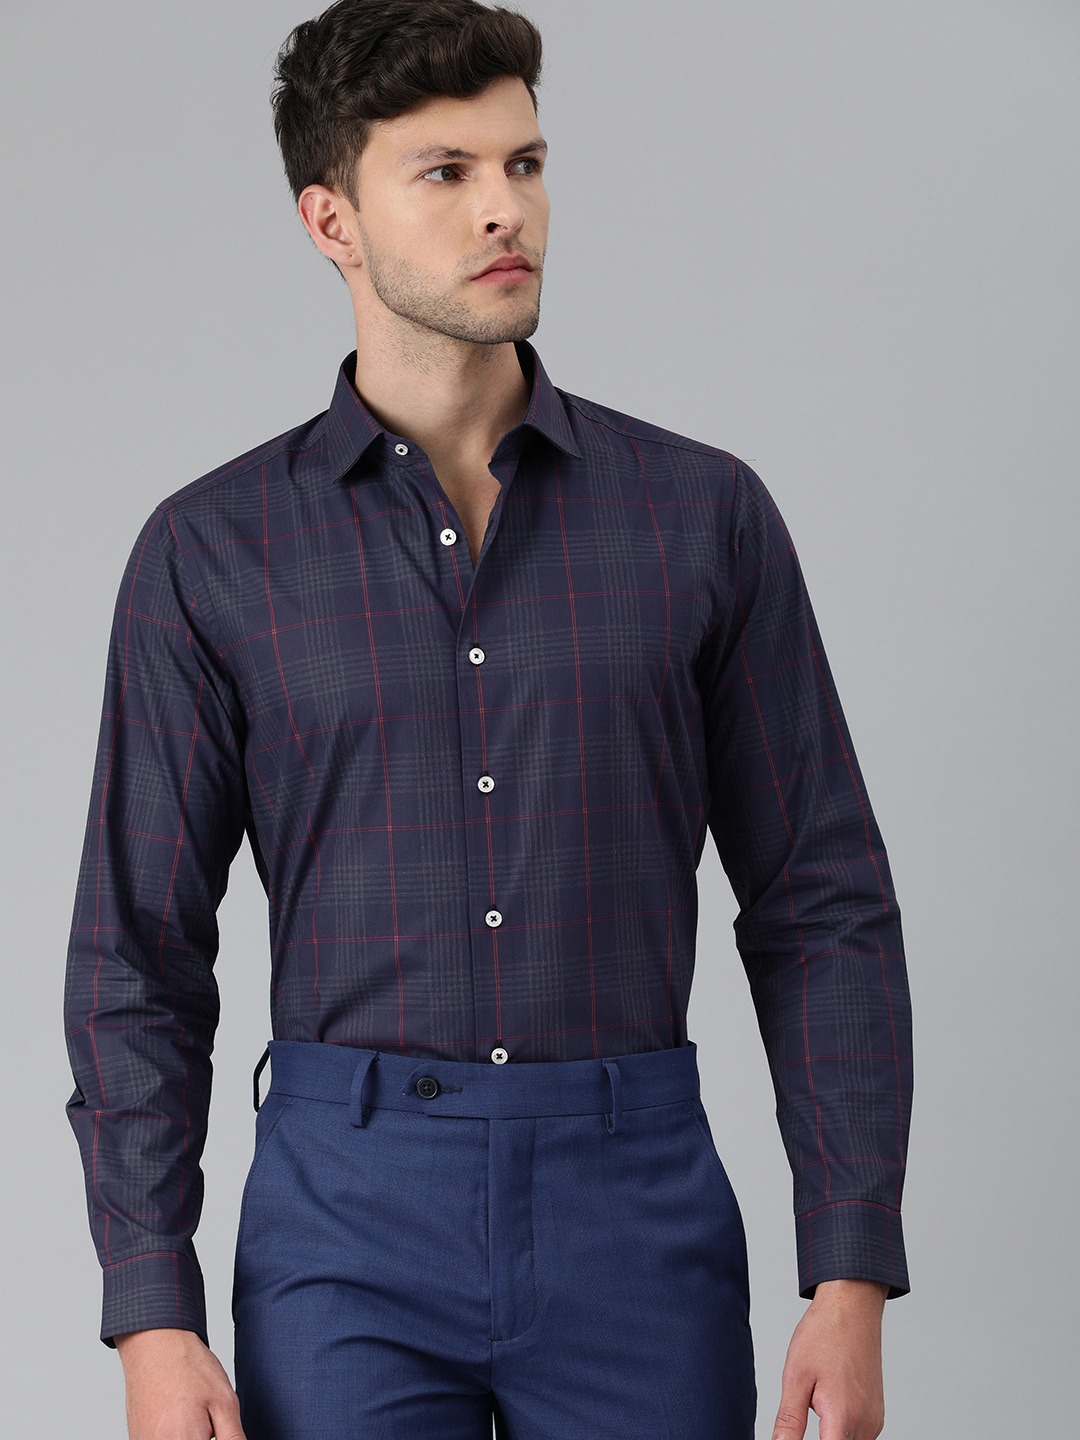 The Bear House   Men Navy Blue & Red Slim Fit Checked Formal Shirt